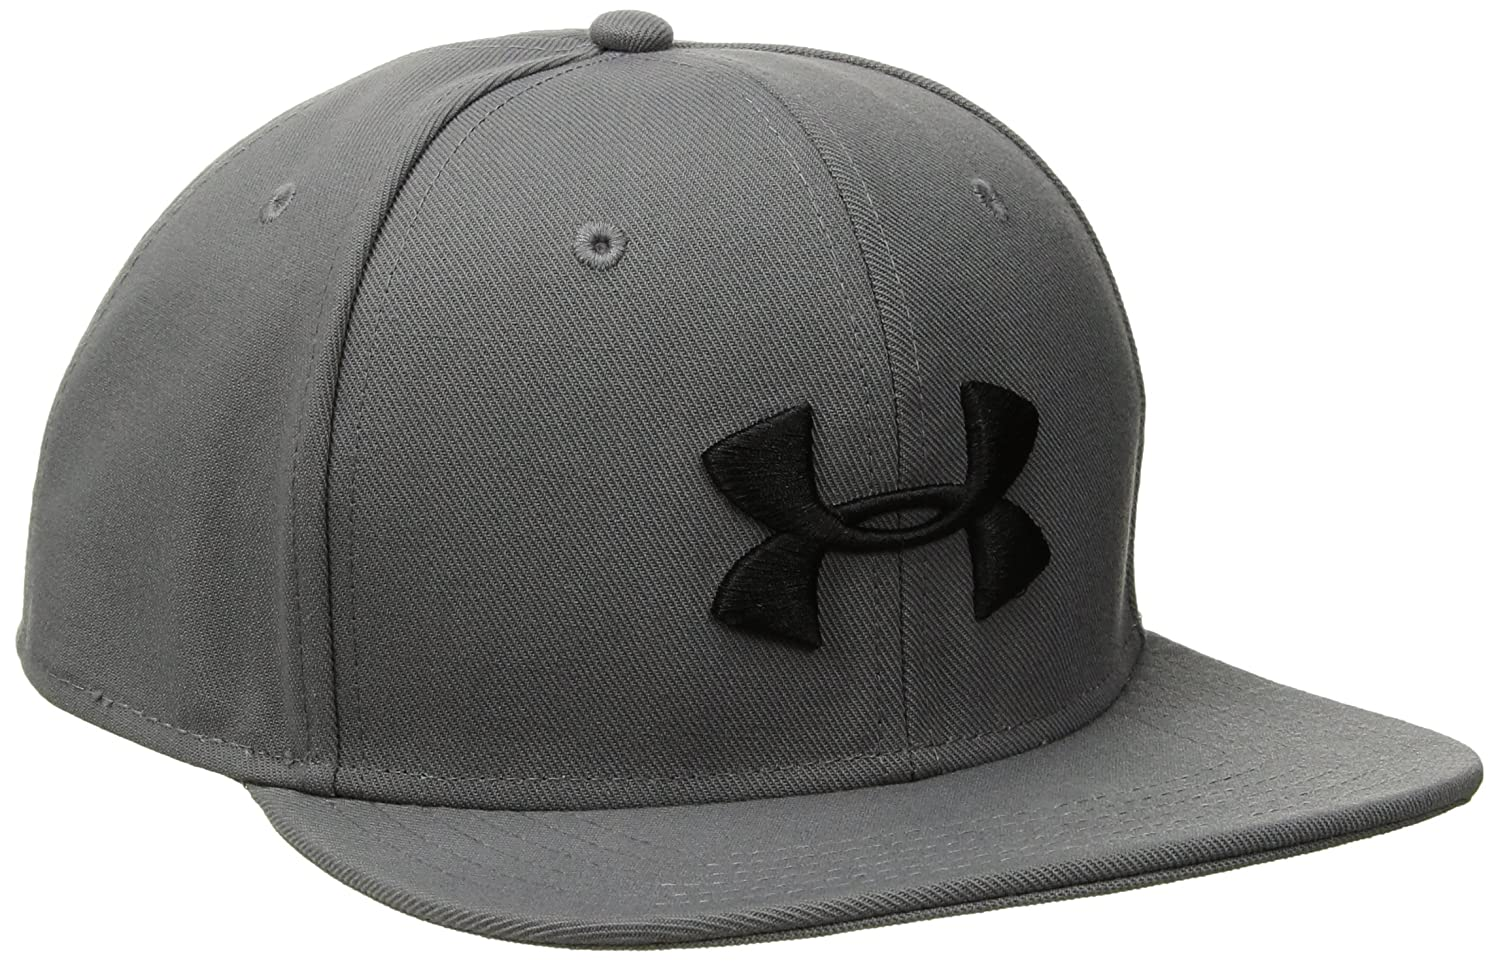 37af613c556 Amazon.com  Under Armour Men s UA Huddle Snapback Cap  Sports   Outdoors